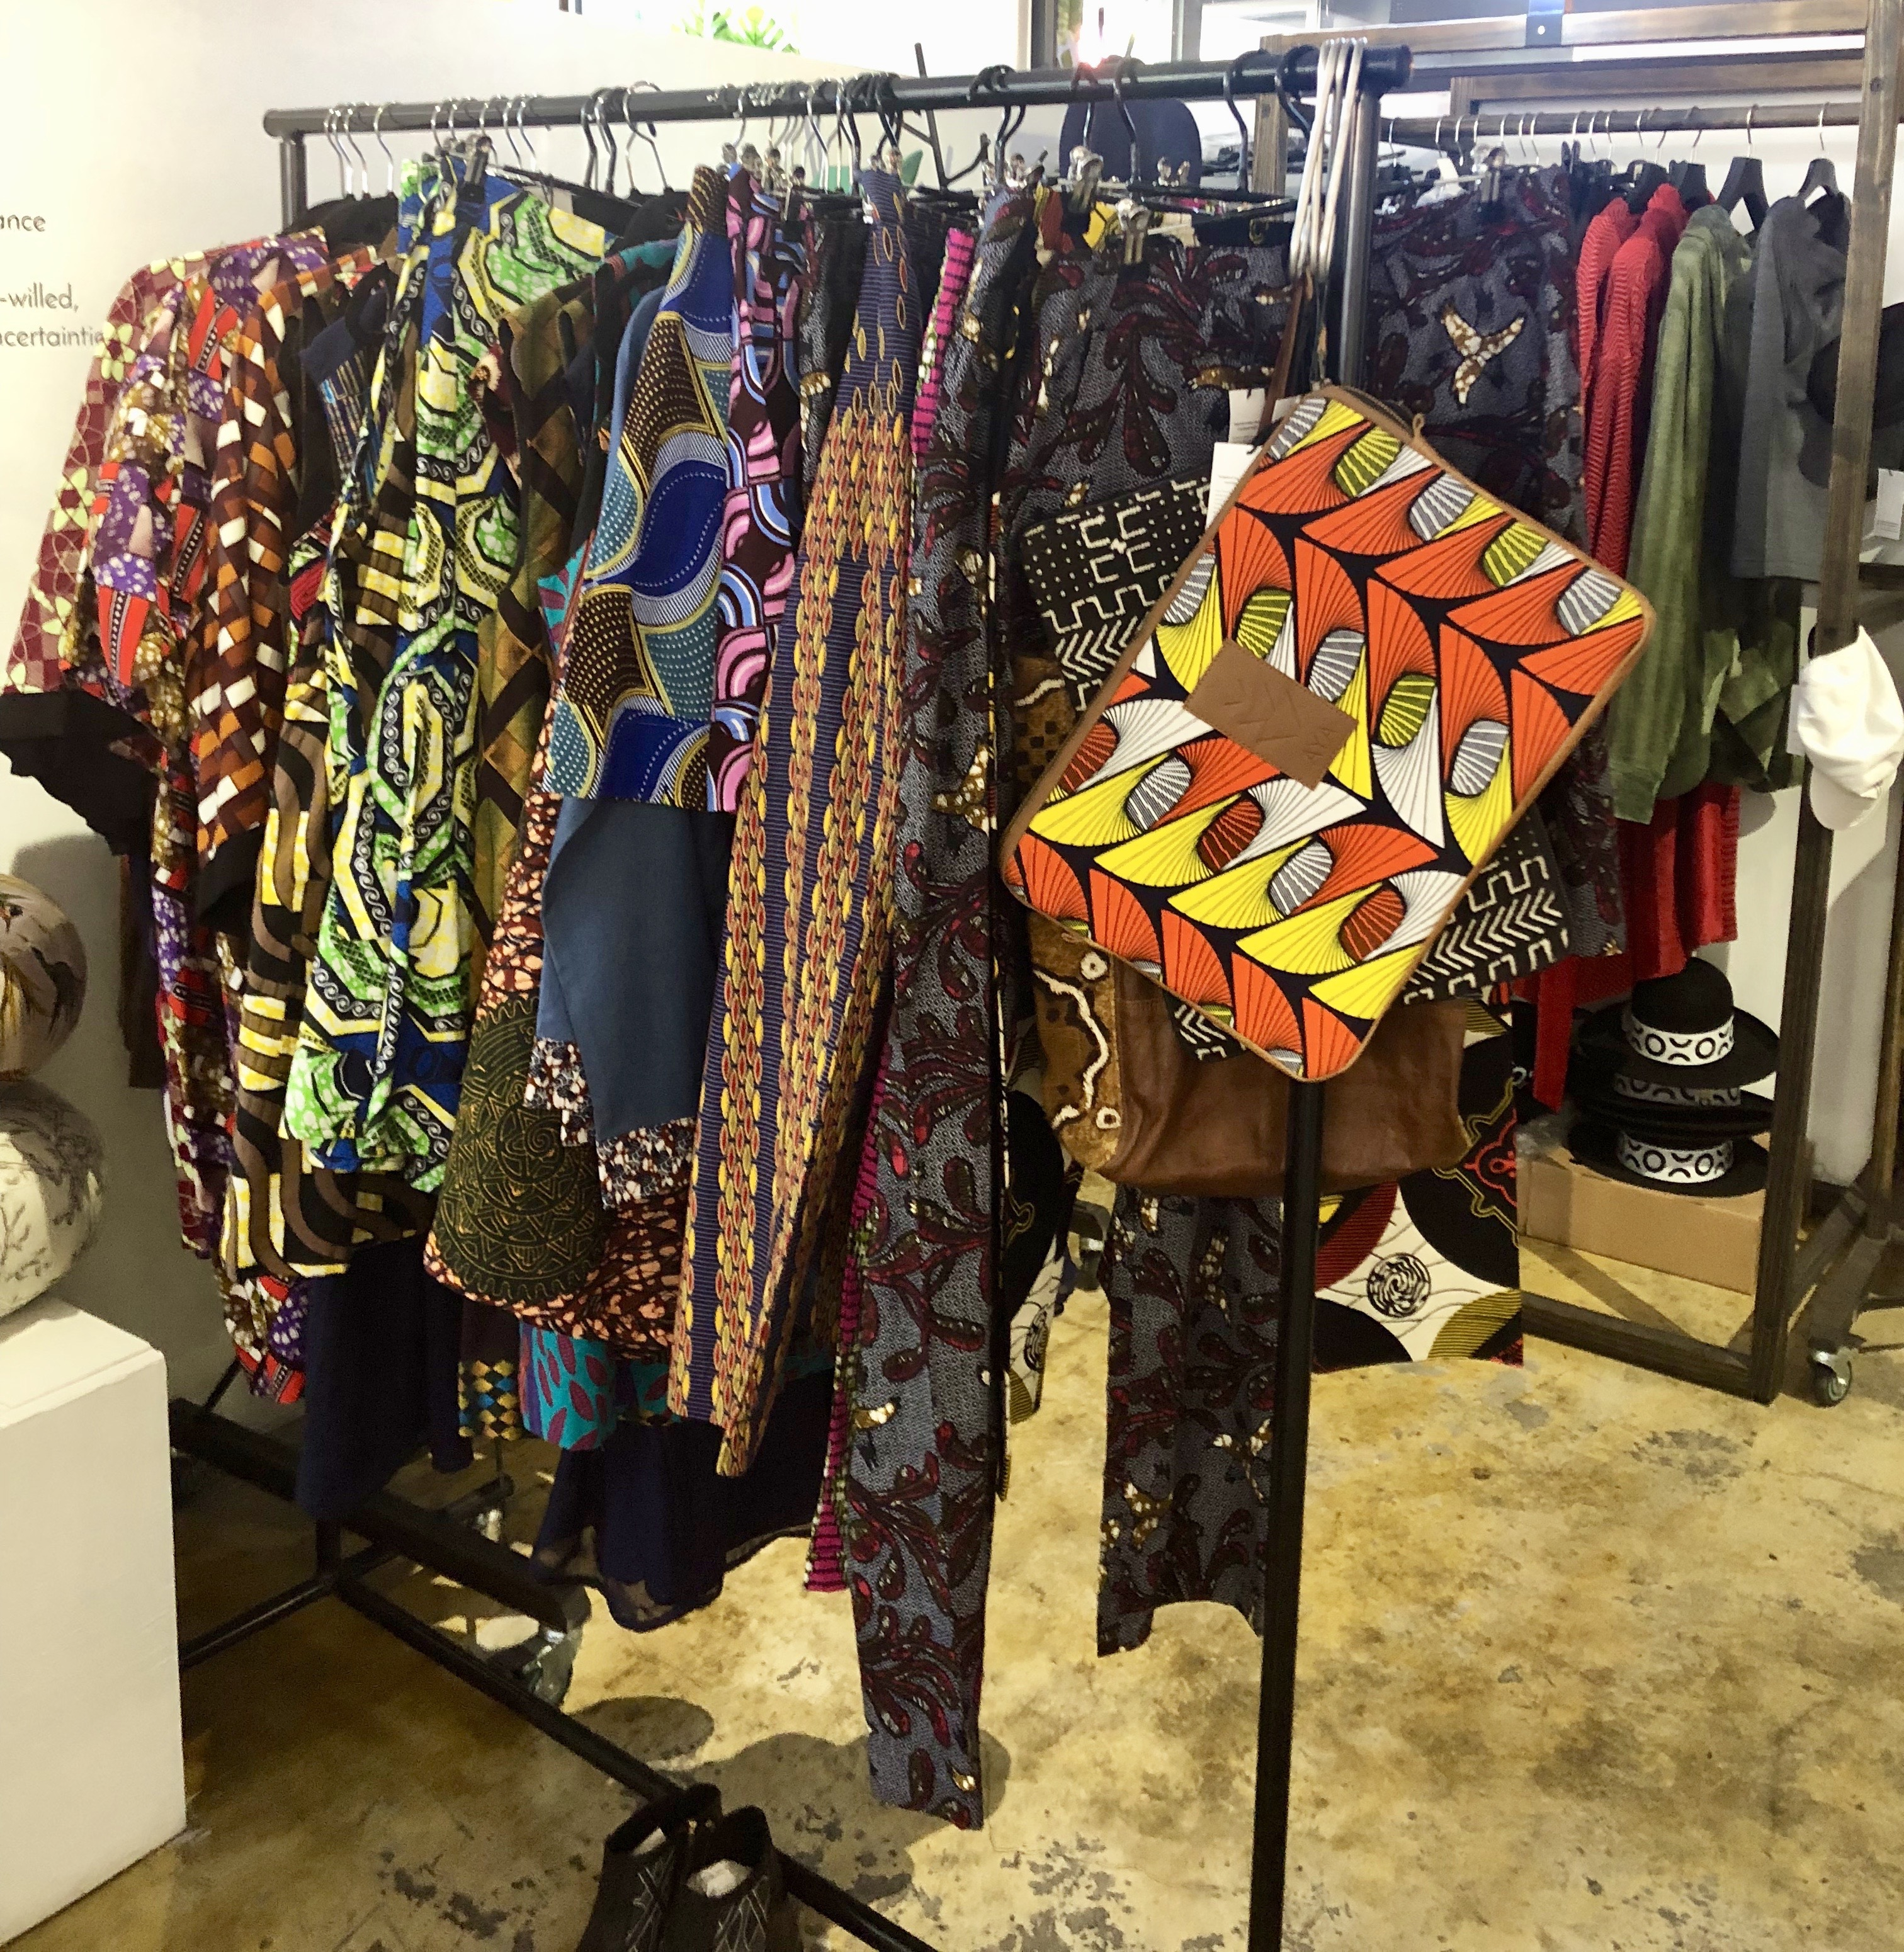 Pam S Guide To Cape Town Shopping Cape Fusion Tours